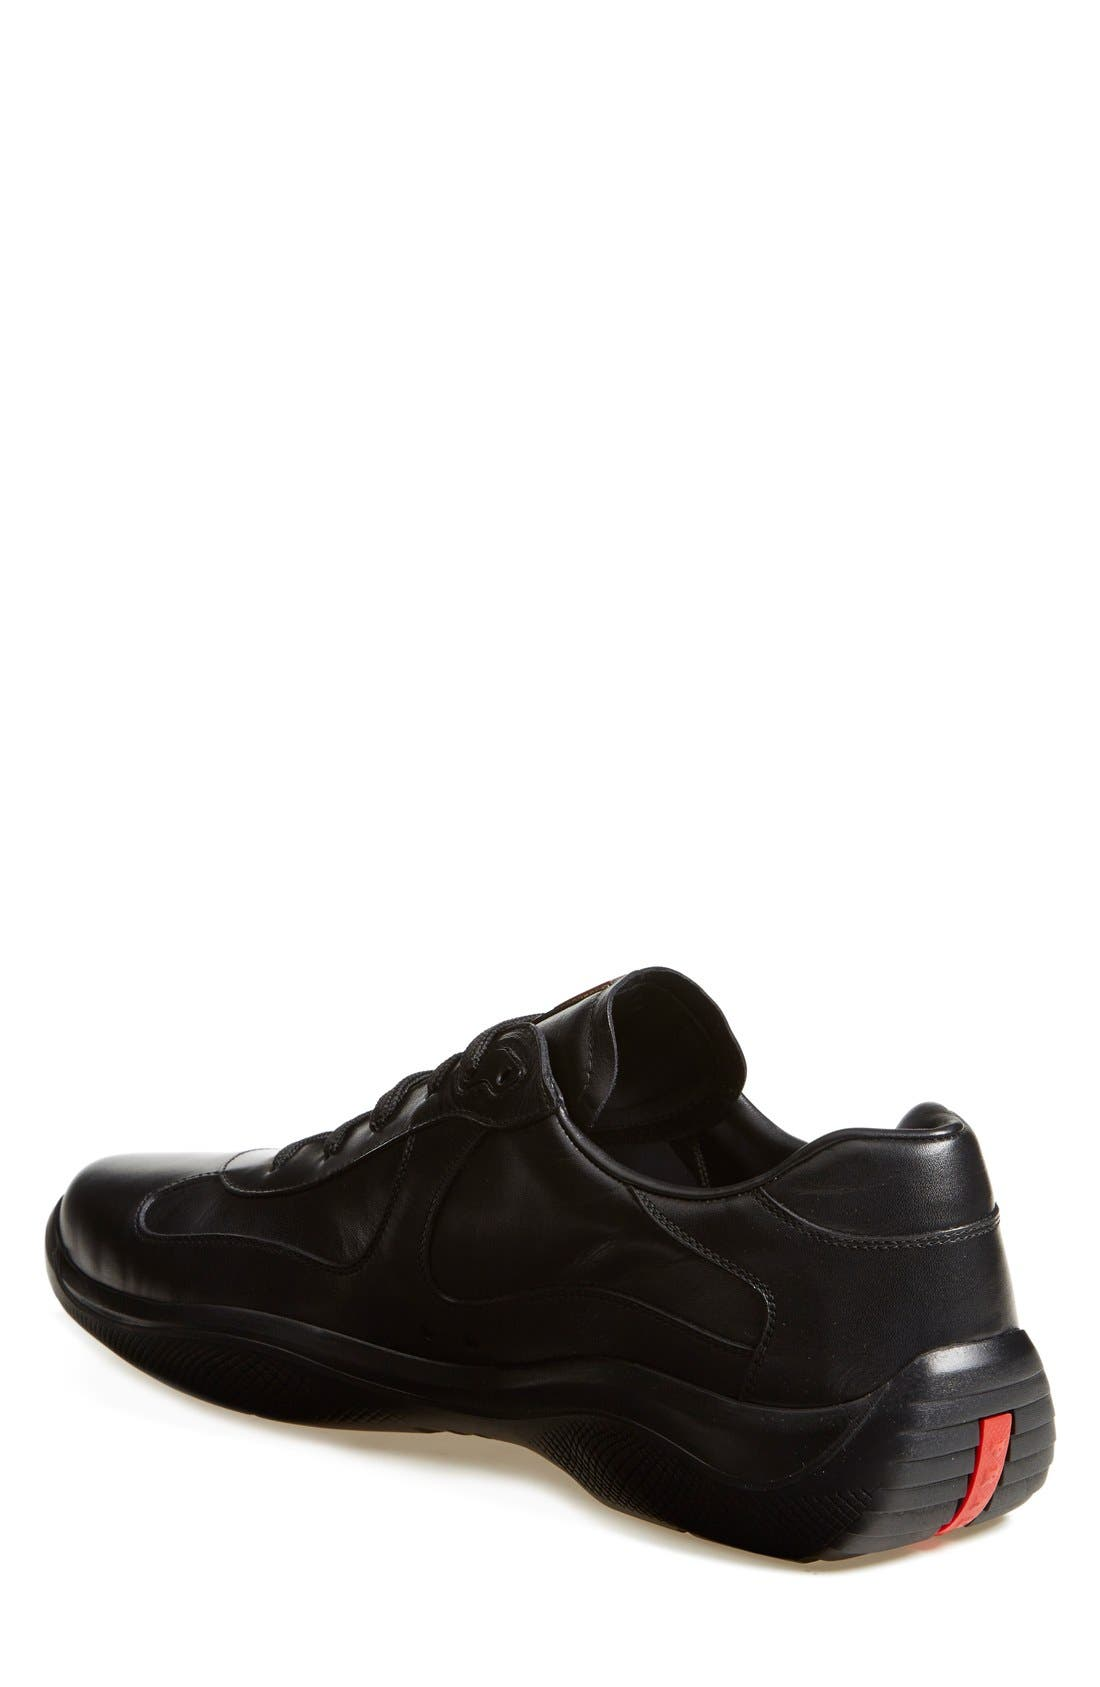 'Punta Ala' Leather Sneaker,                             Alternate thumbnail 2, color,                             Black